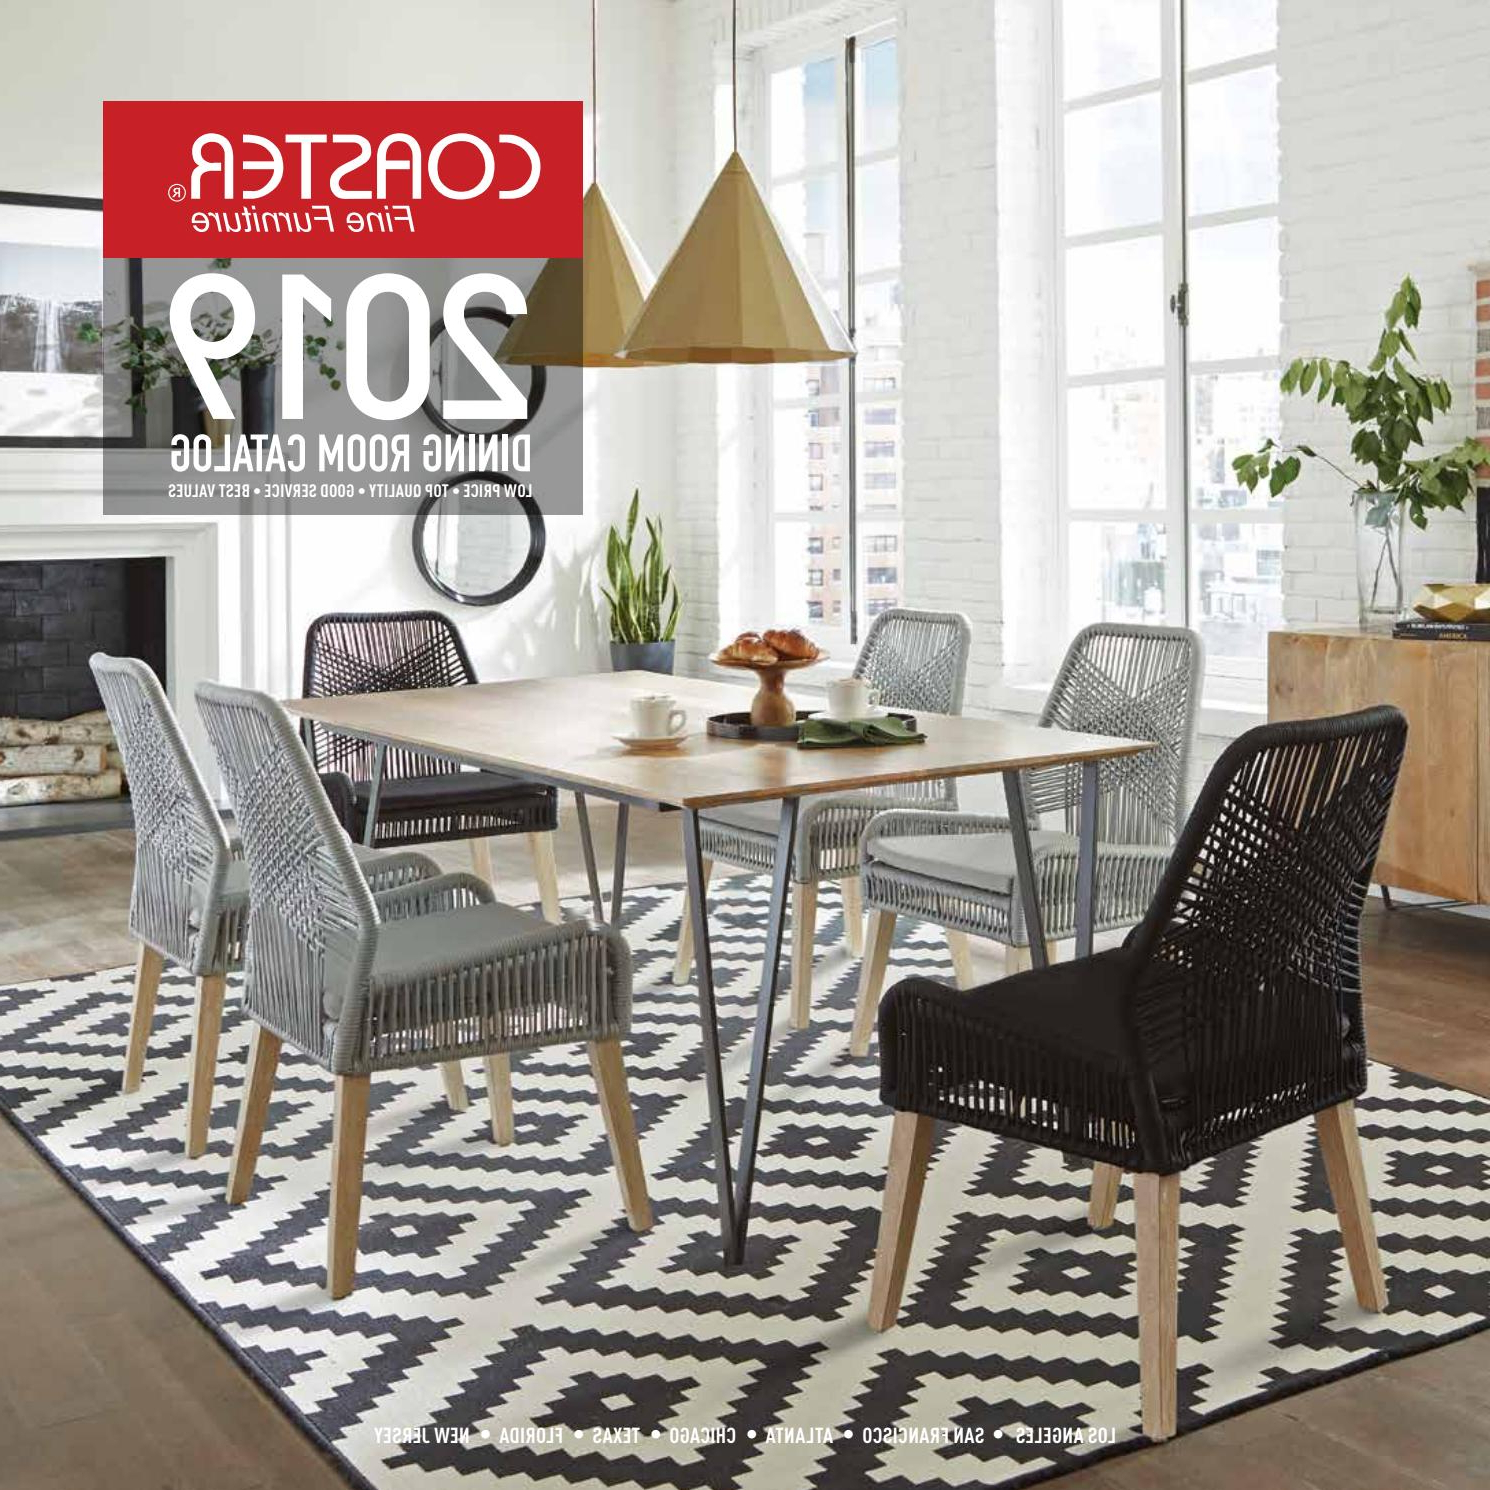 Rustic Brown Lorraine Extending Dining Tables in Most Up-to-Date Coaster 2019 Dining Room Catalogcoaster Company Of